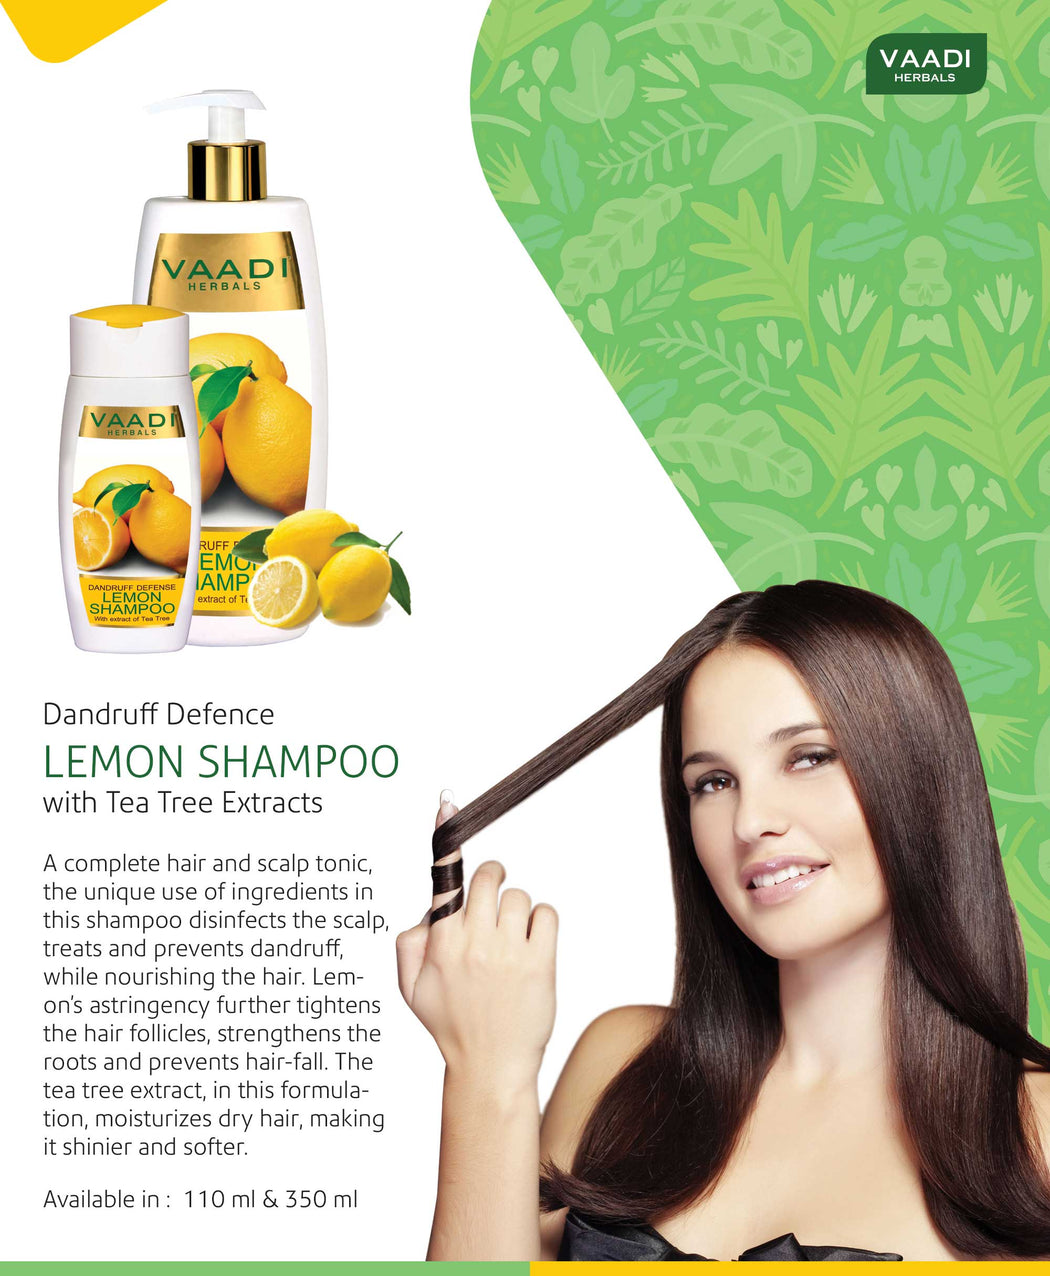 Dandruff Defense Organic Lemon Shampoo with Tea Tree Extract - Disinfects Scalp - Prevents Hairfall (3 x 110 ml/ 4 fl oz)